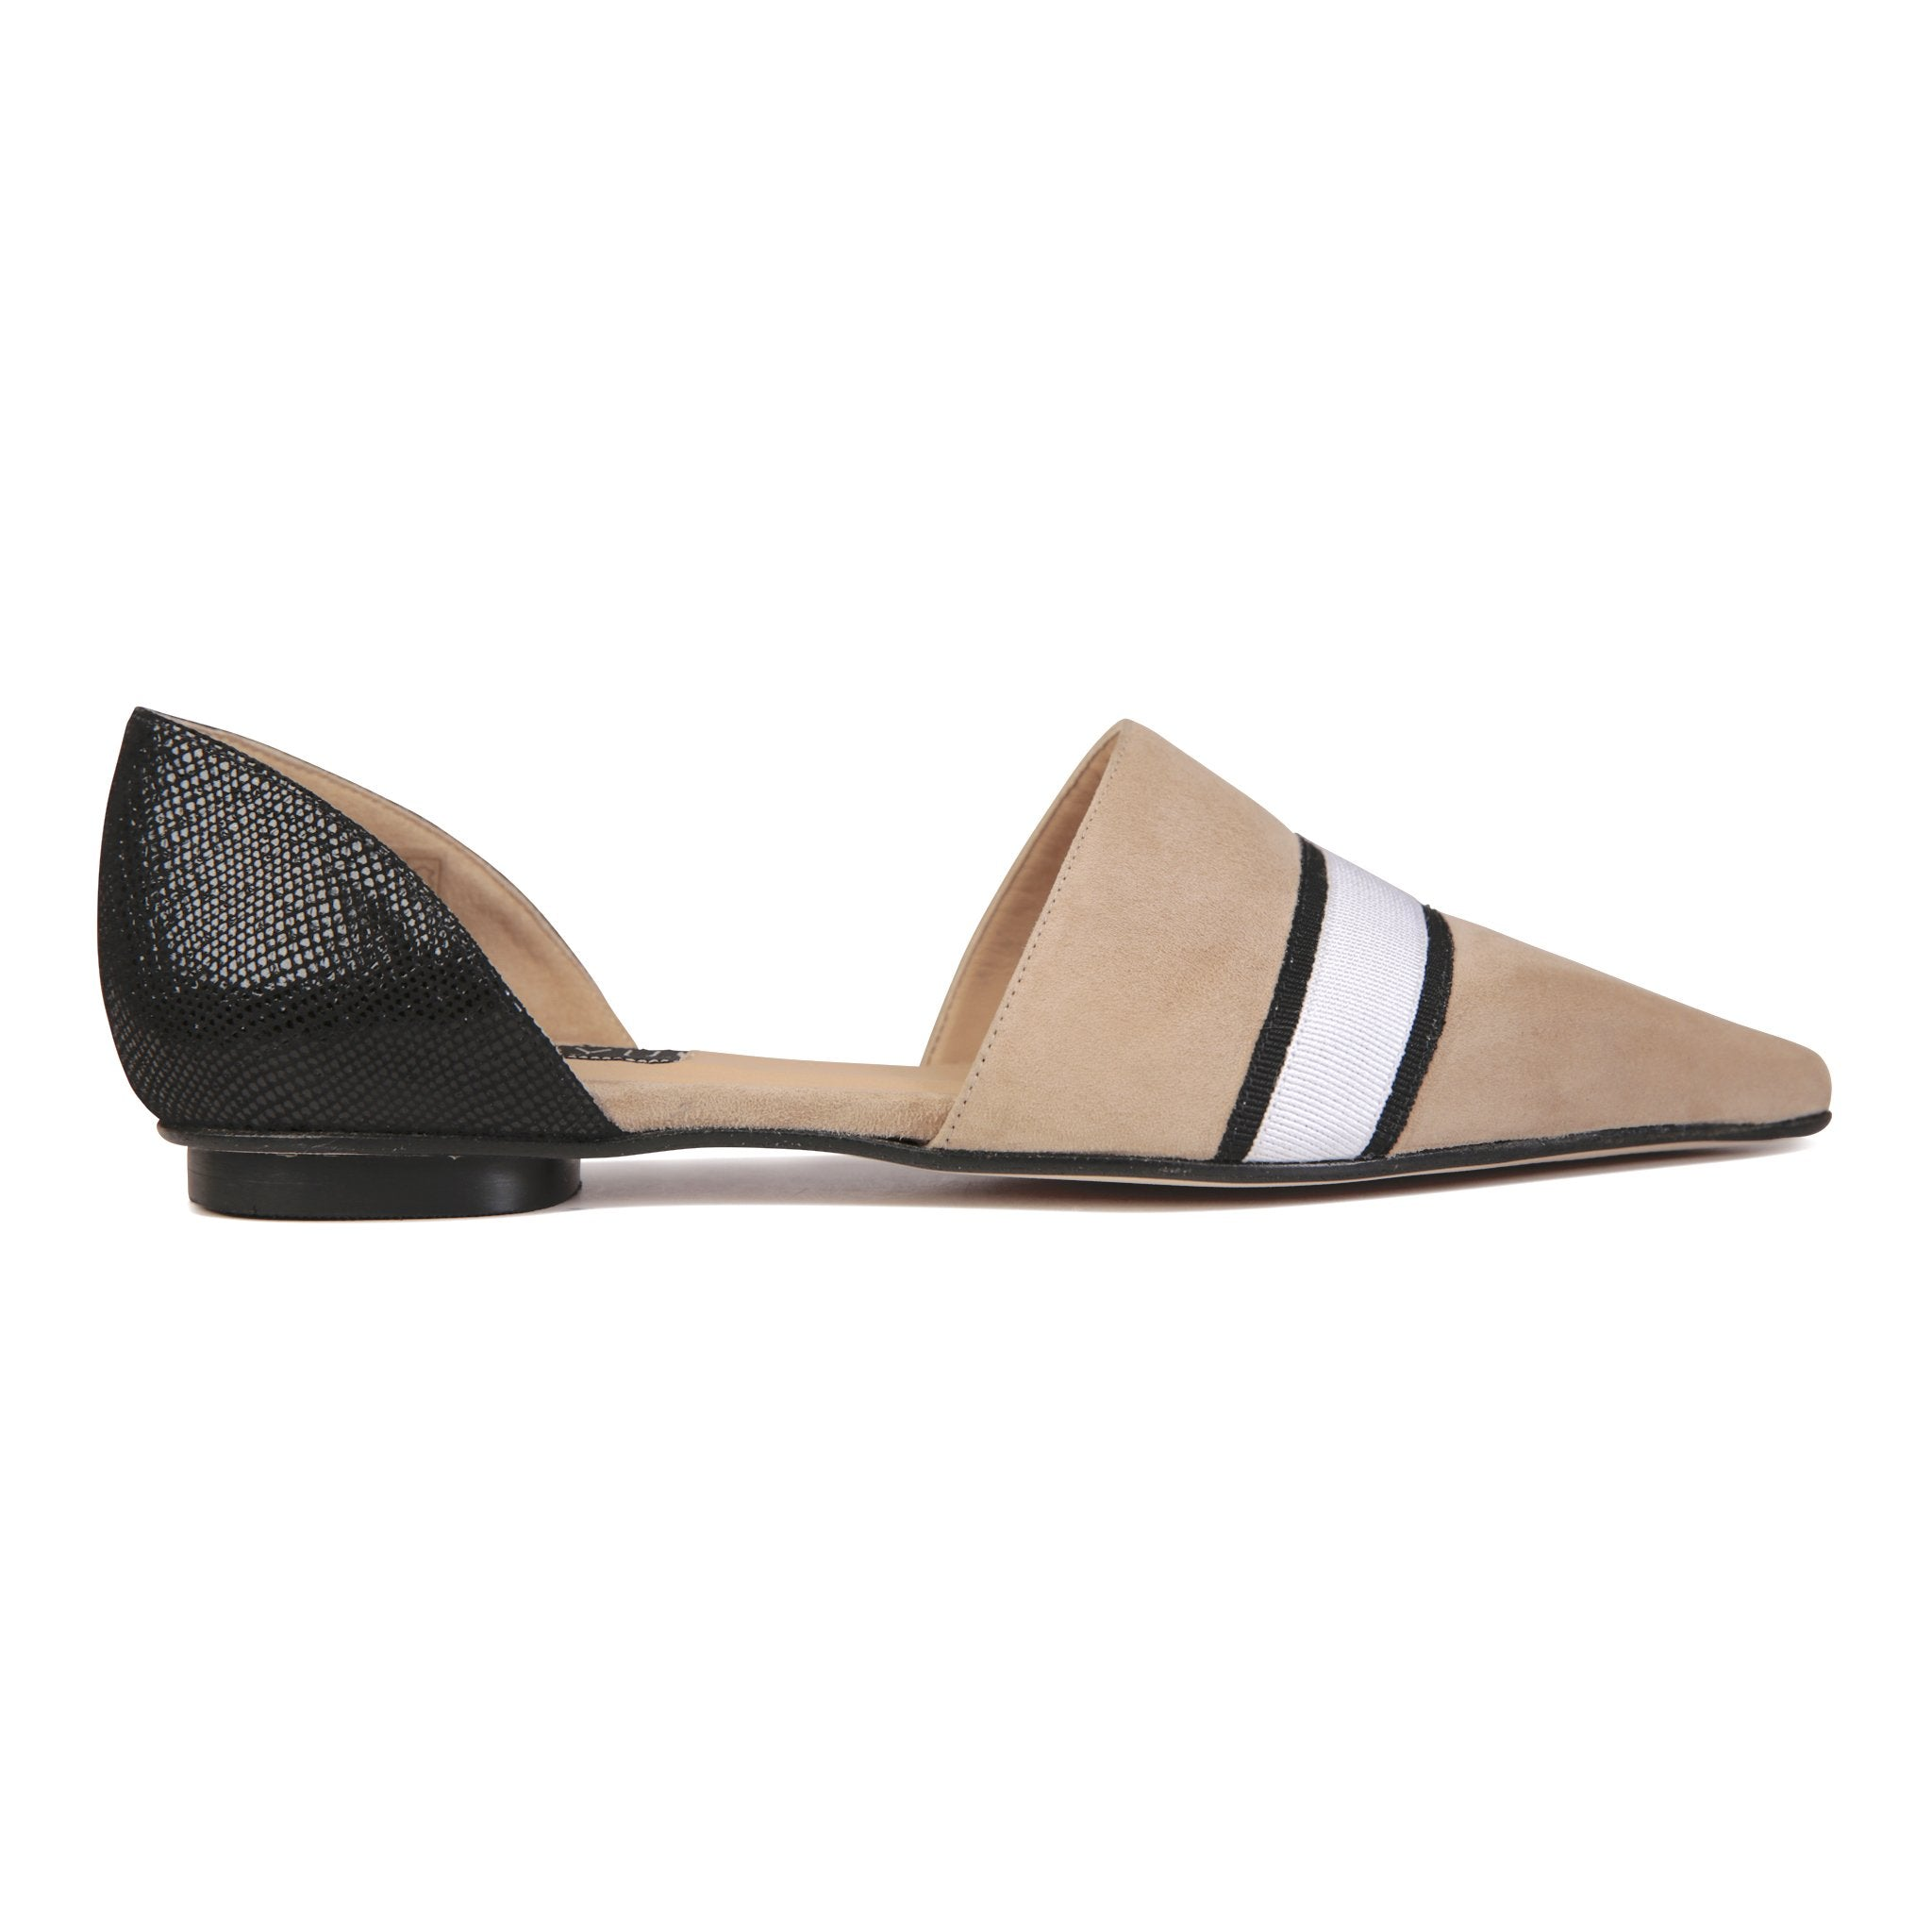 ELBA - Velukid Tan with Gros Stripes + Karung Nero, VIAJIYU - Women's Hand Made Sustainable Luxury Shoes. Made in Italy. Made to Order.